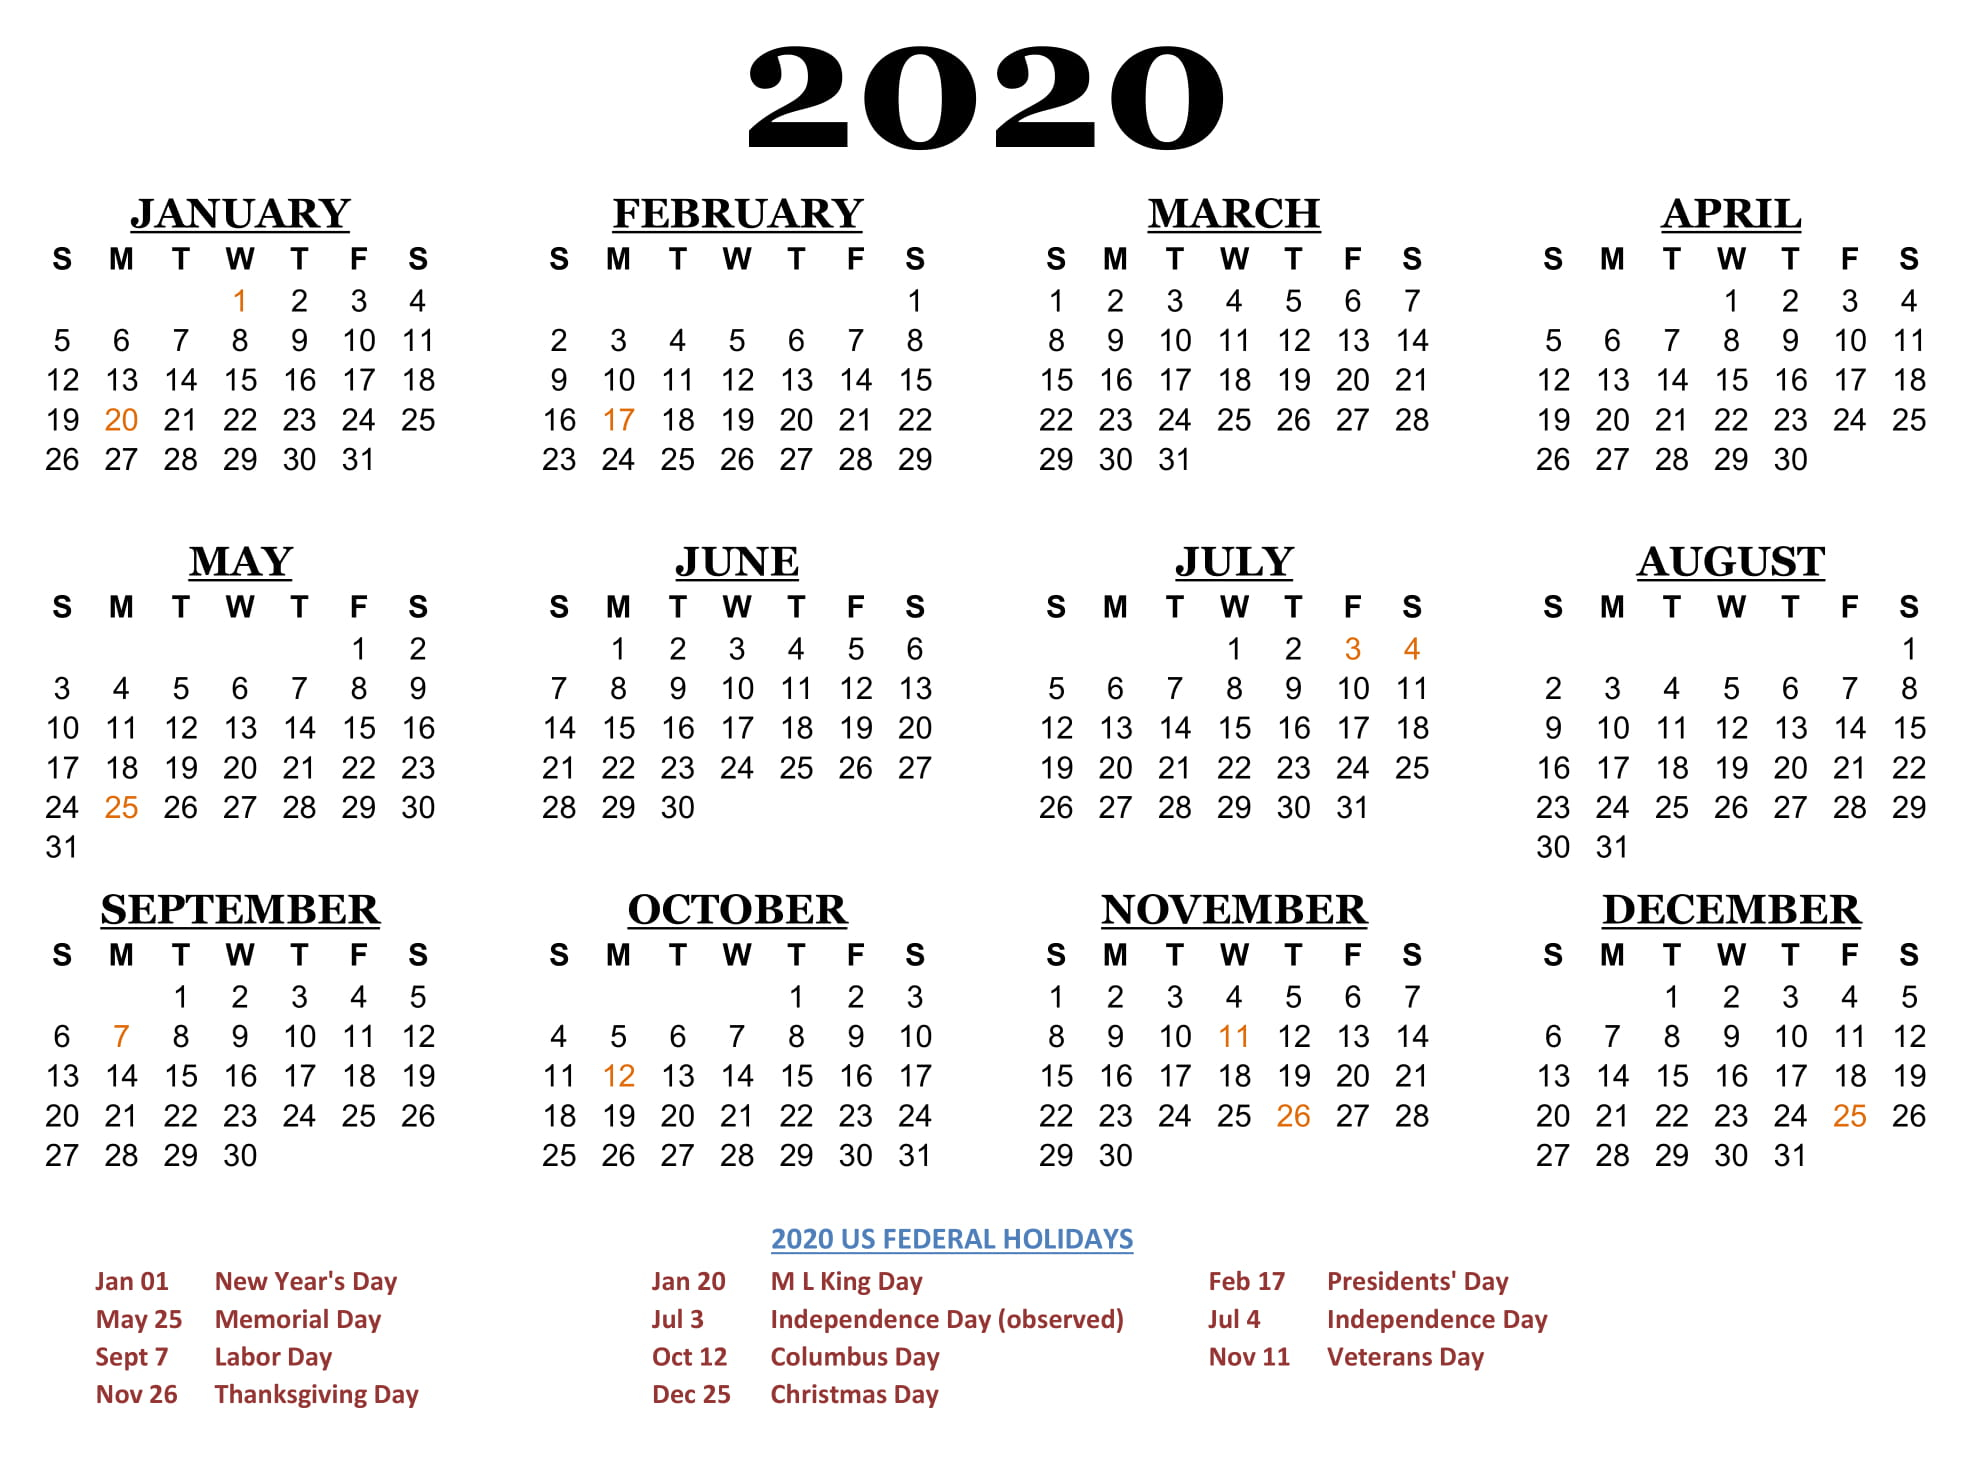 Free Calendar 2020 Printable Yearly | 12 Month Printable inside Calendar 2020 Only Printable Yearly